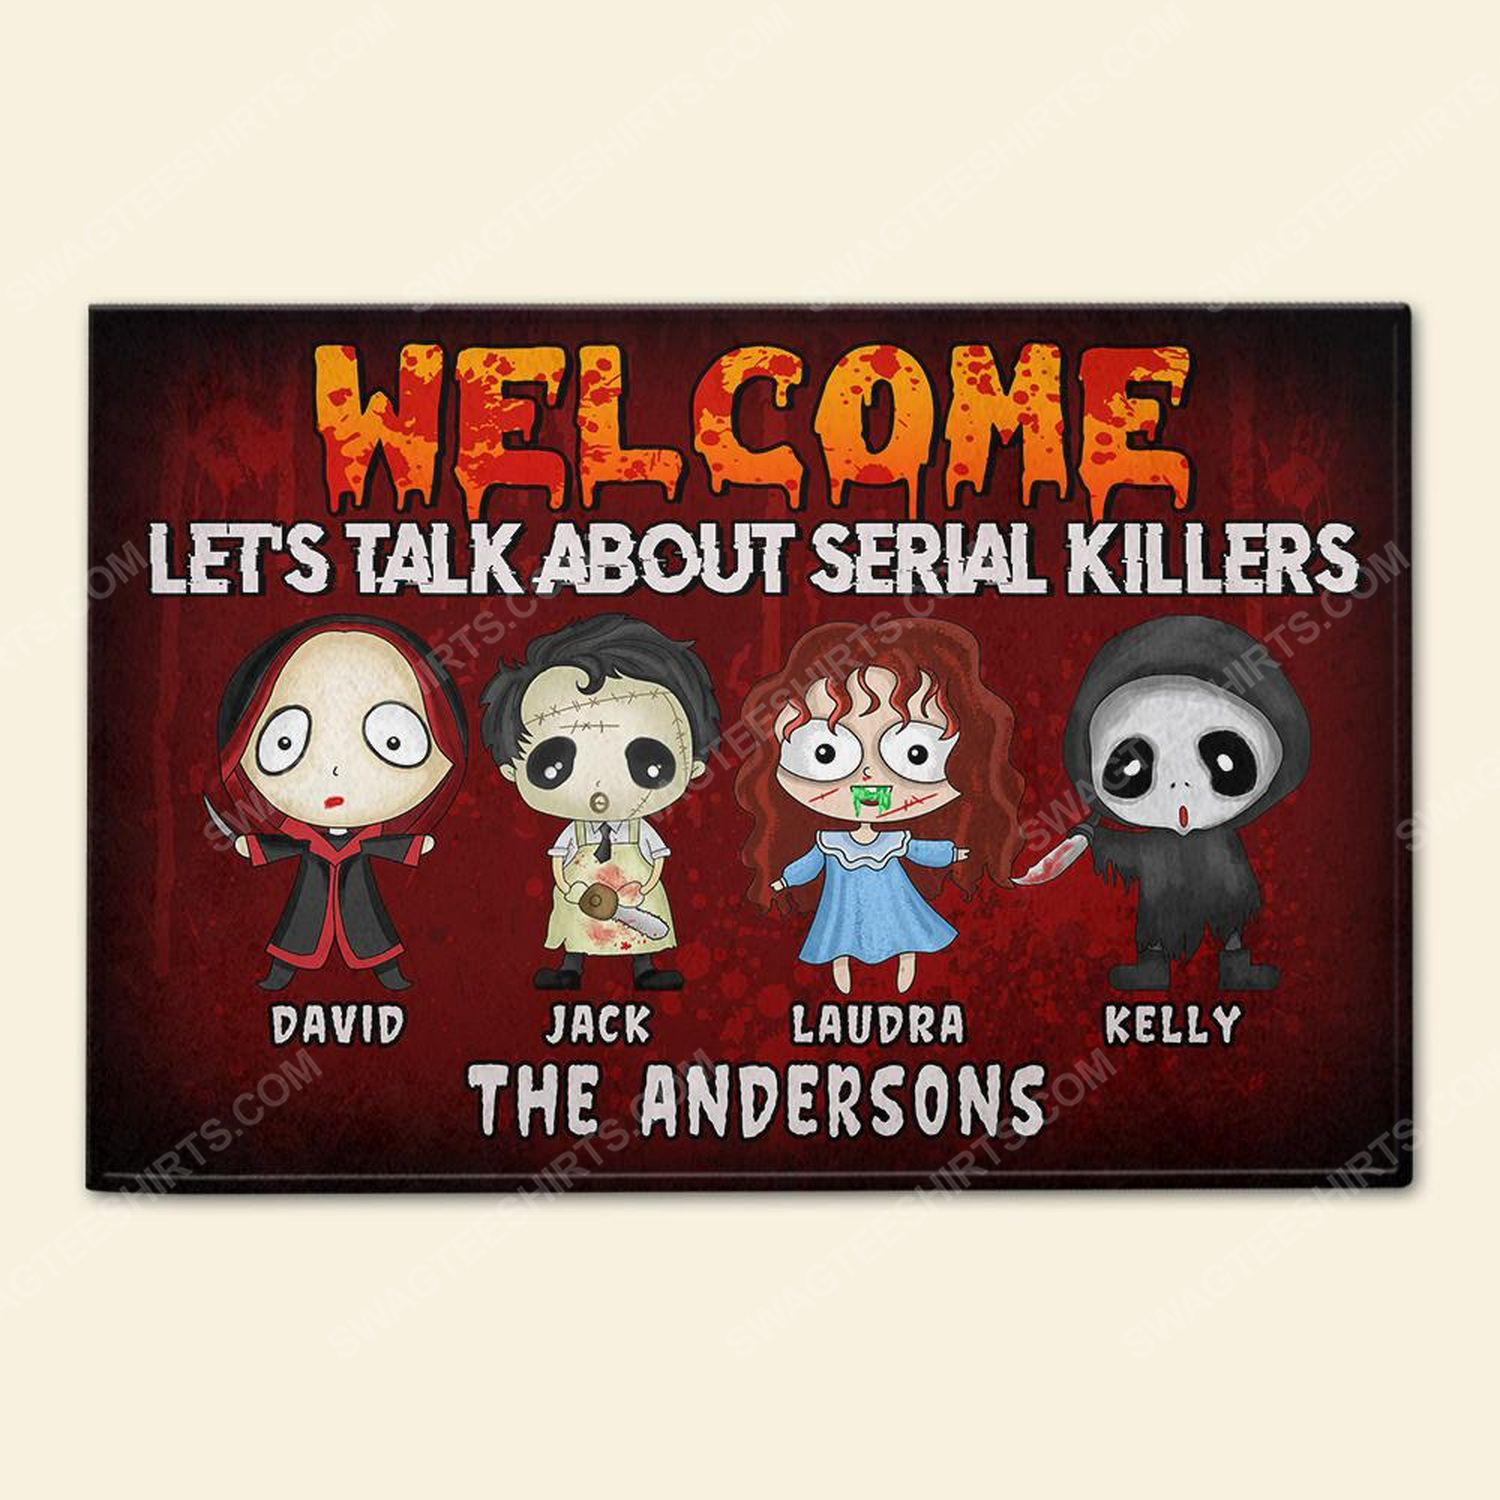 Custom halloween for family let's talk about serial killers doormat 2